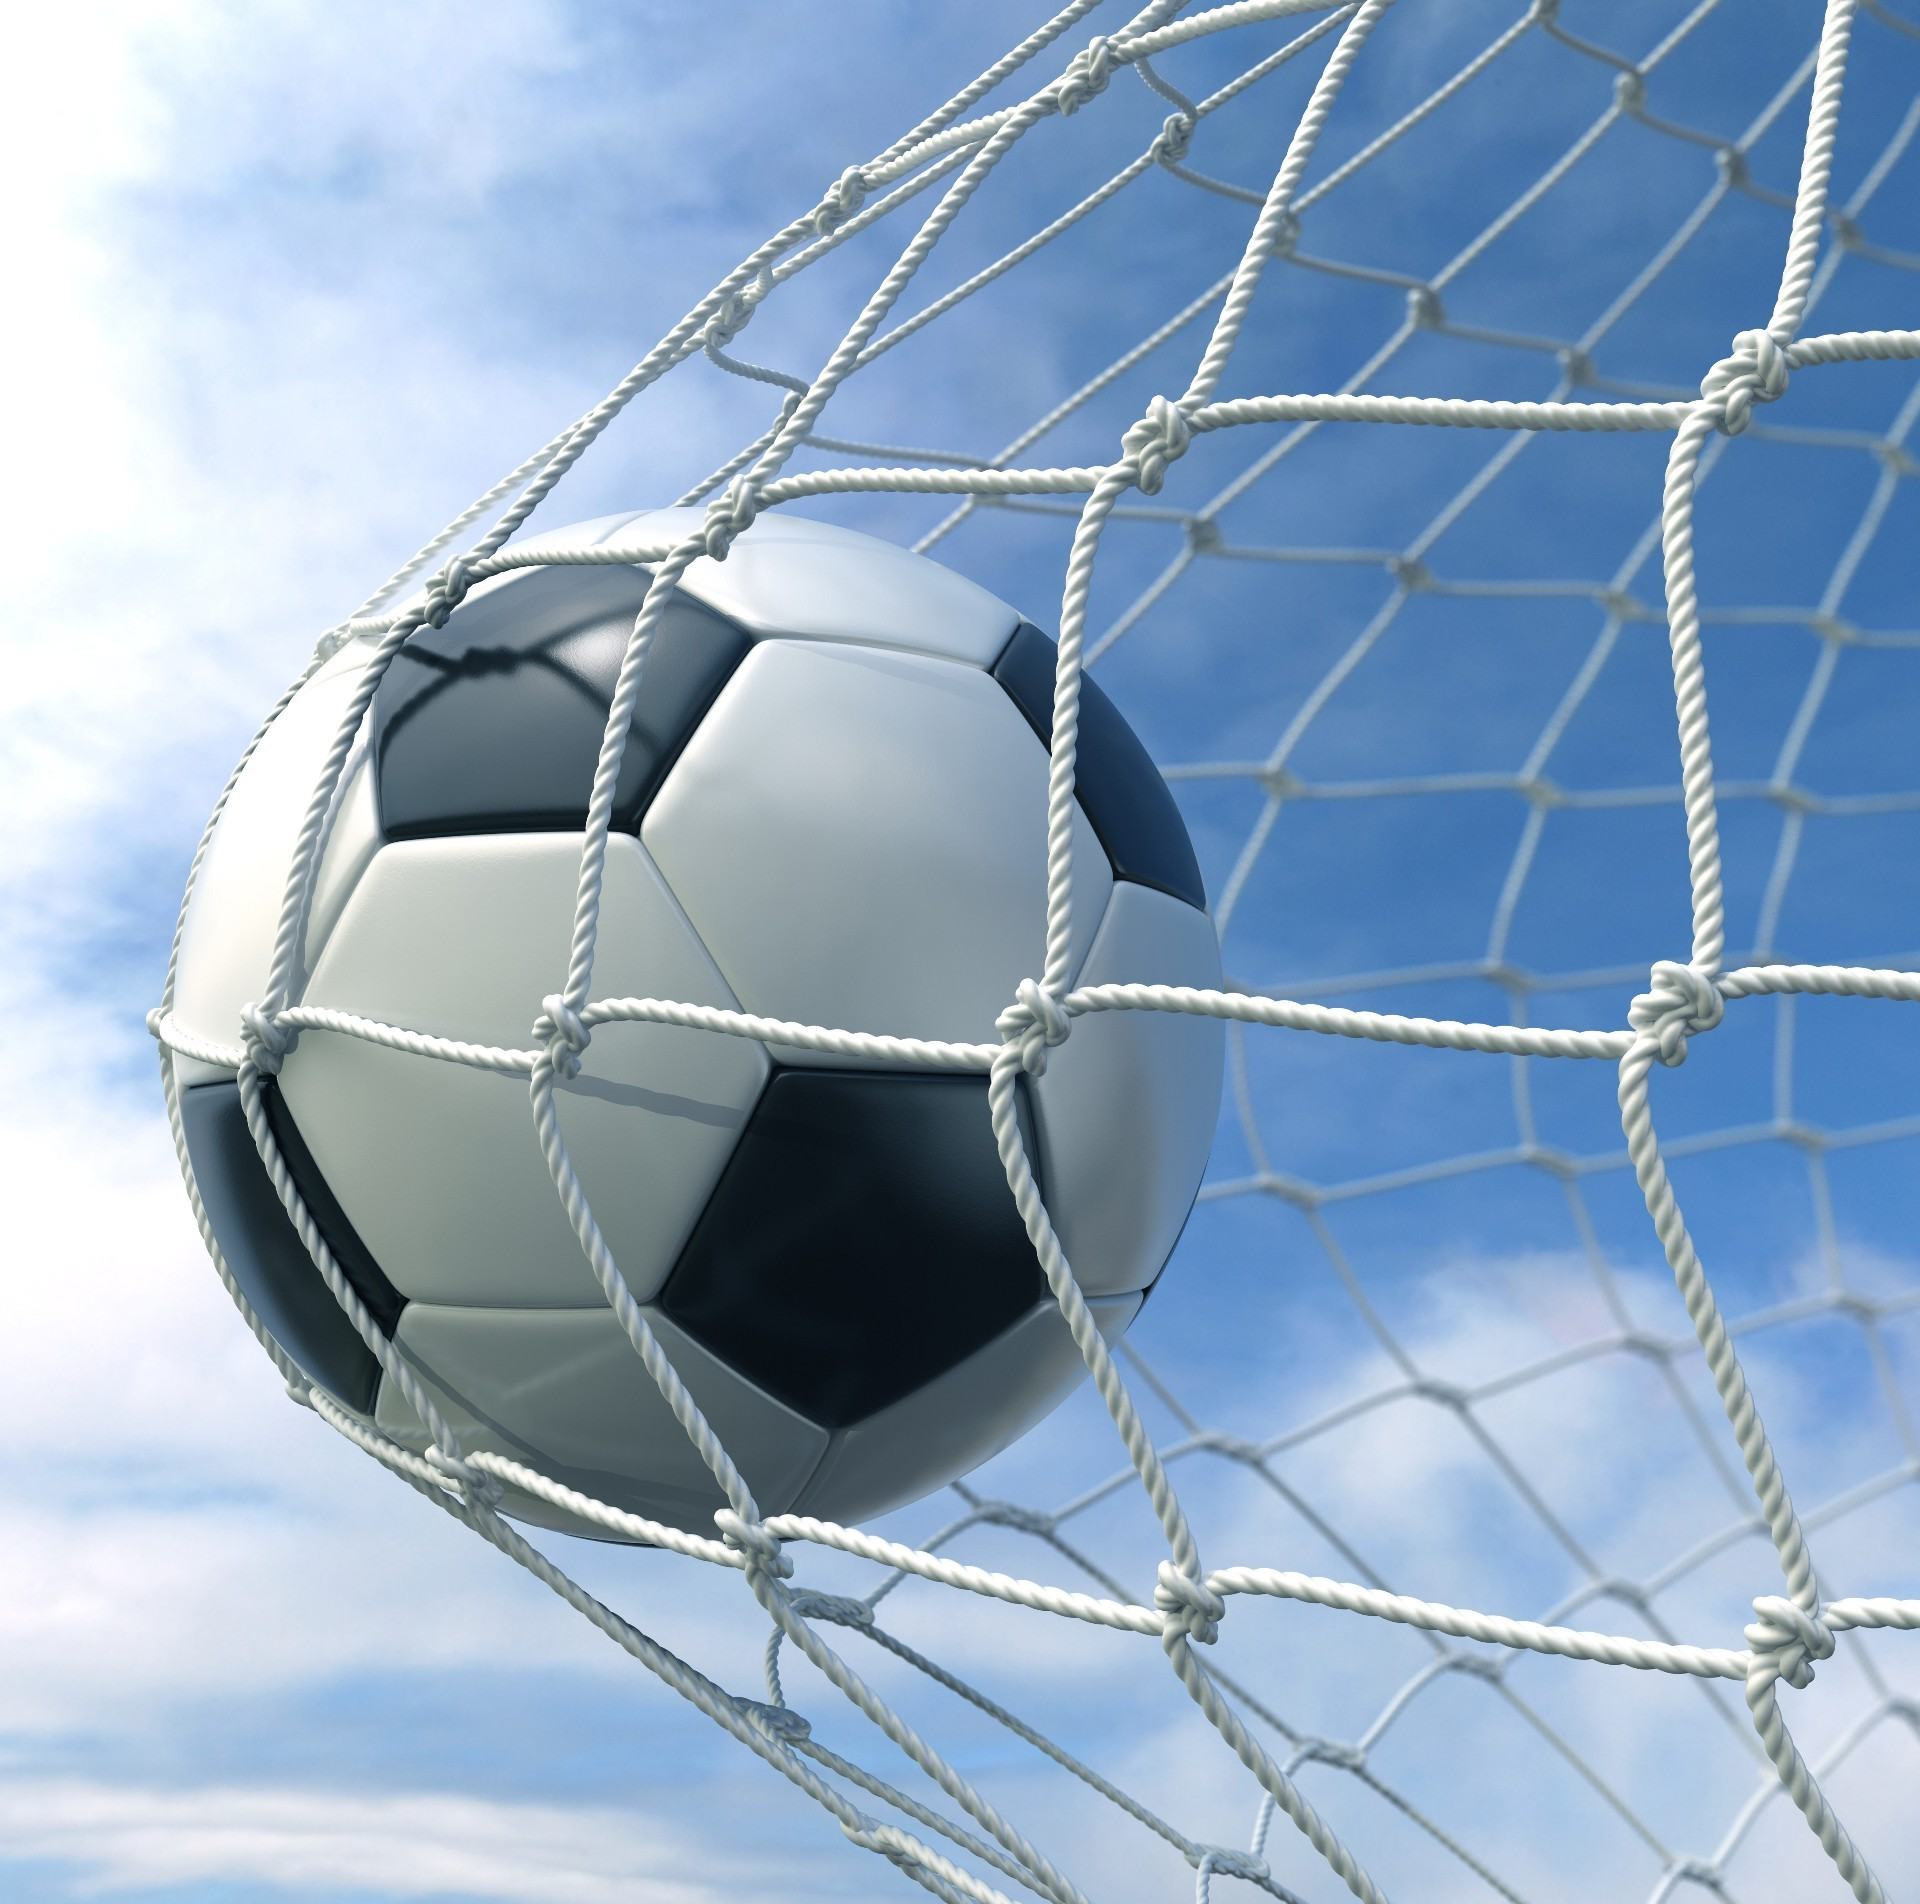 The Soccer Ball Hit Into The Net